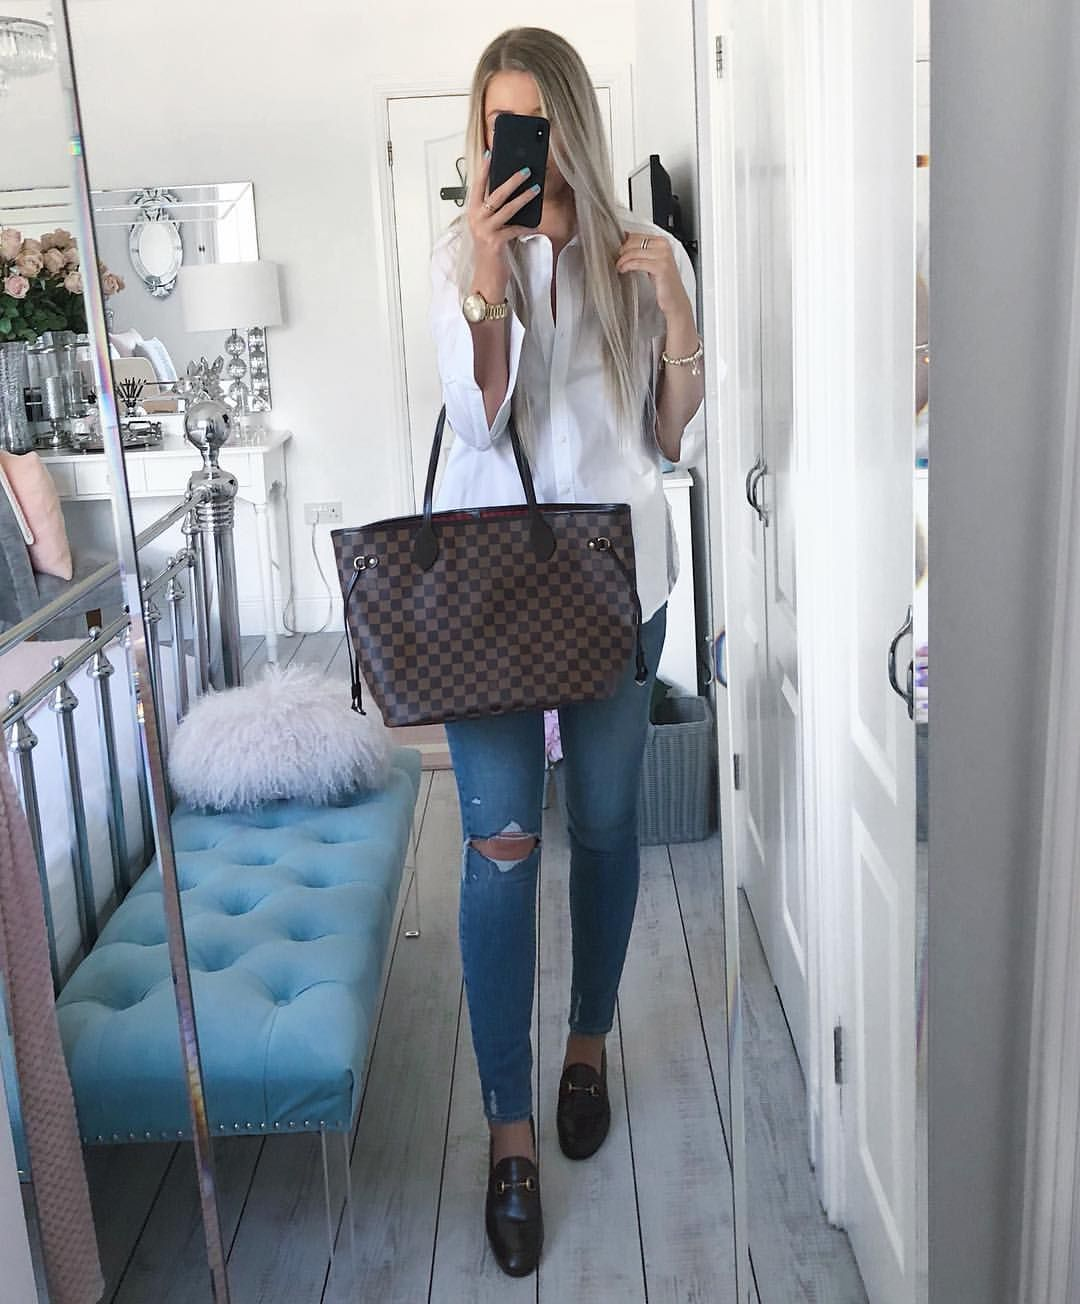 6f7e0429c Instagram @emilyjanehardy Brown Gucci Jordaan loafers, white shirt, spring  style, Louis Vuitton Neverfull bag, Damier ebene, paige denim